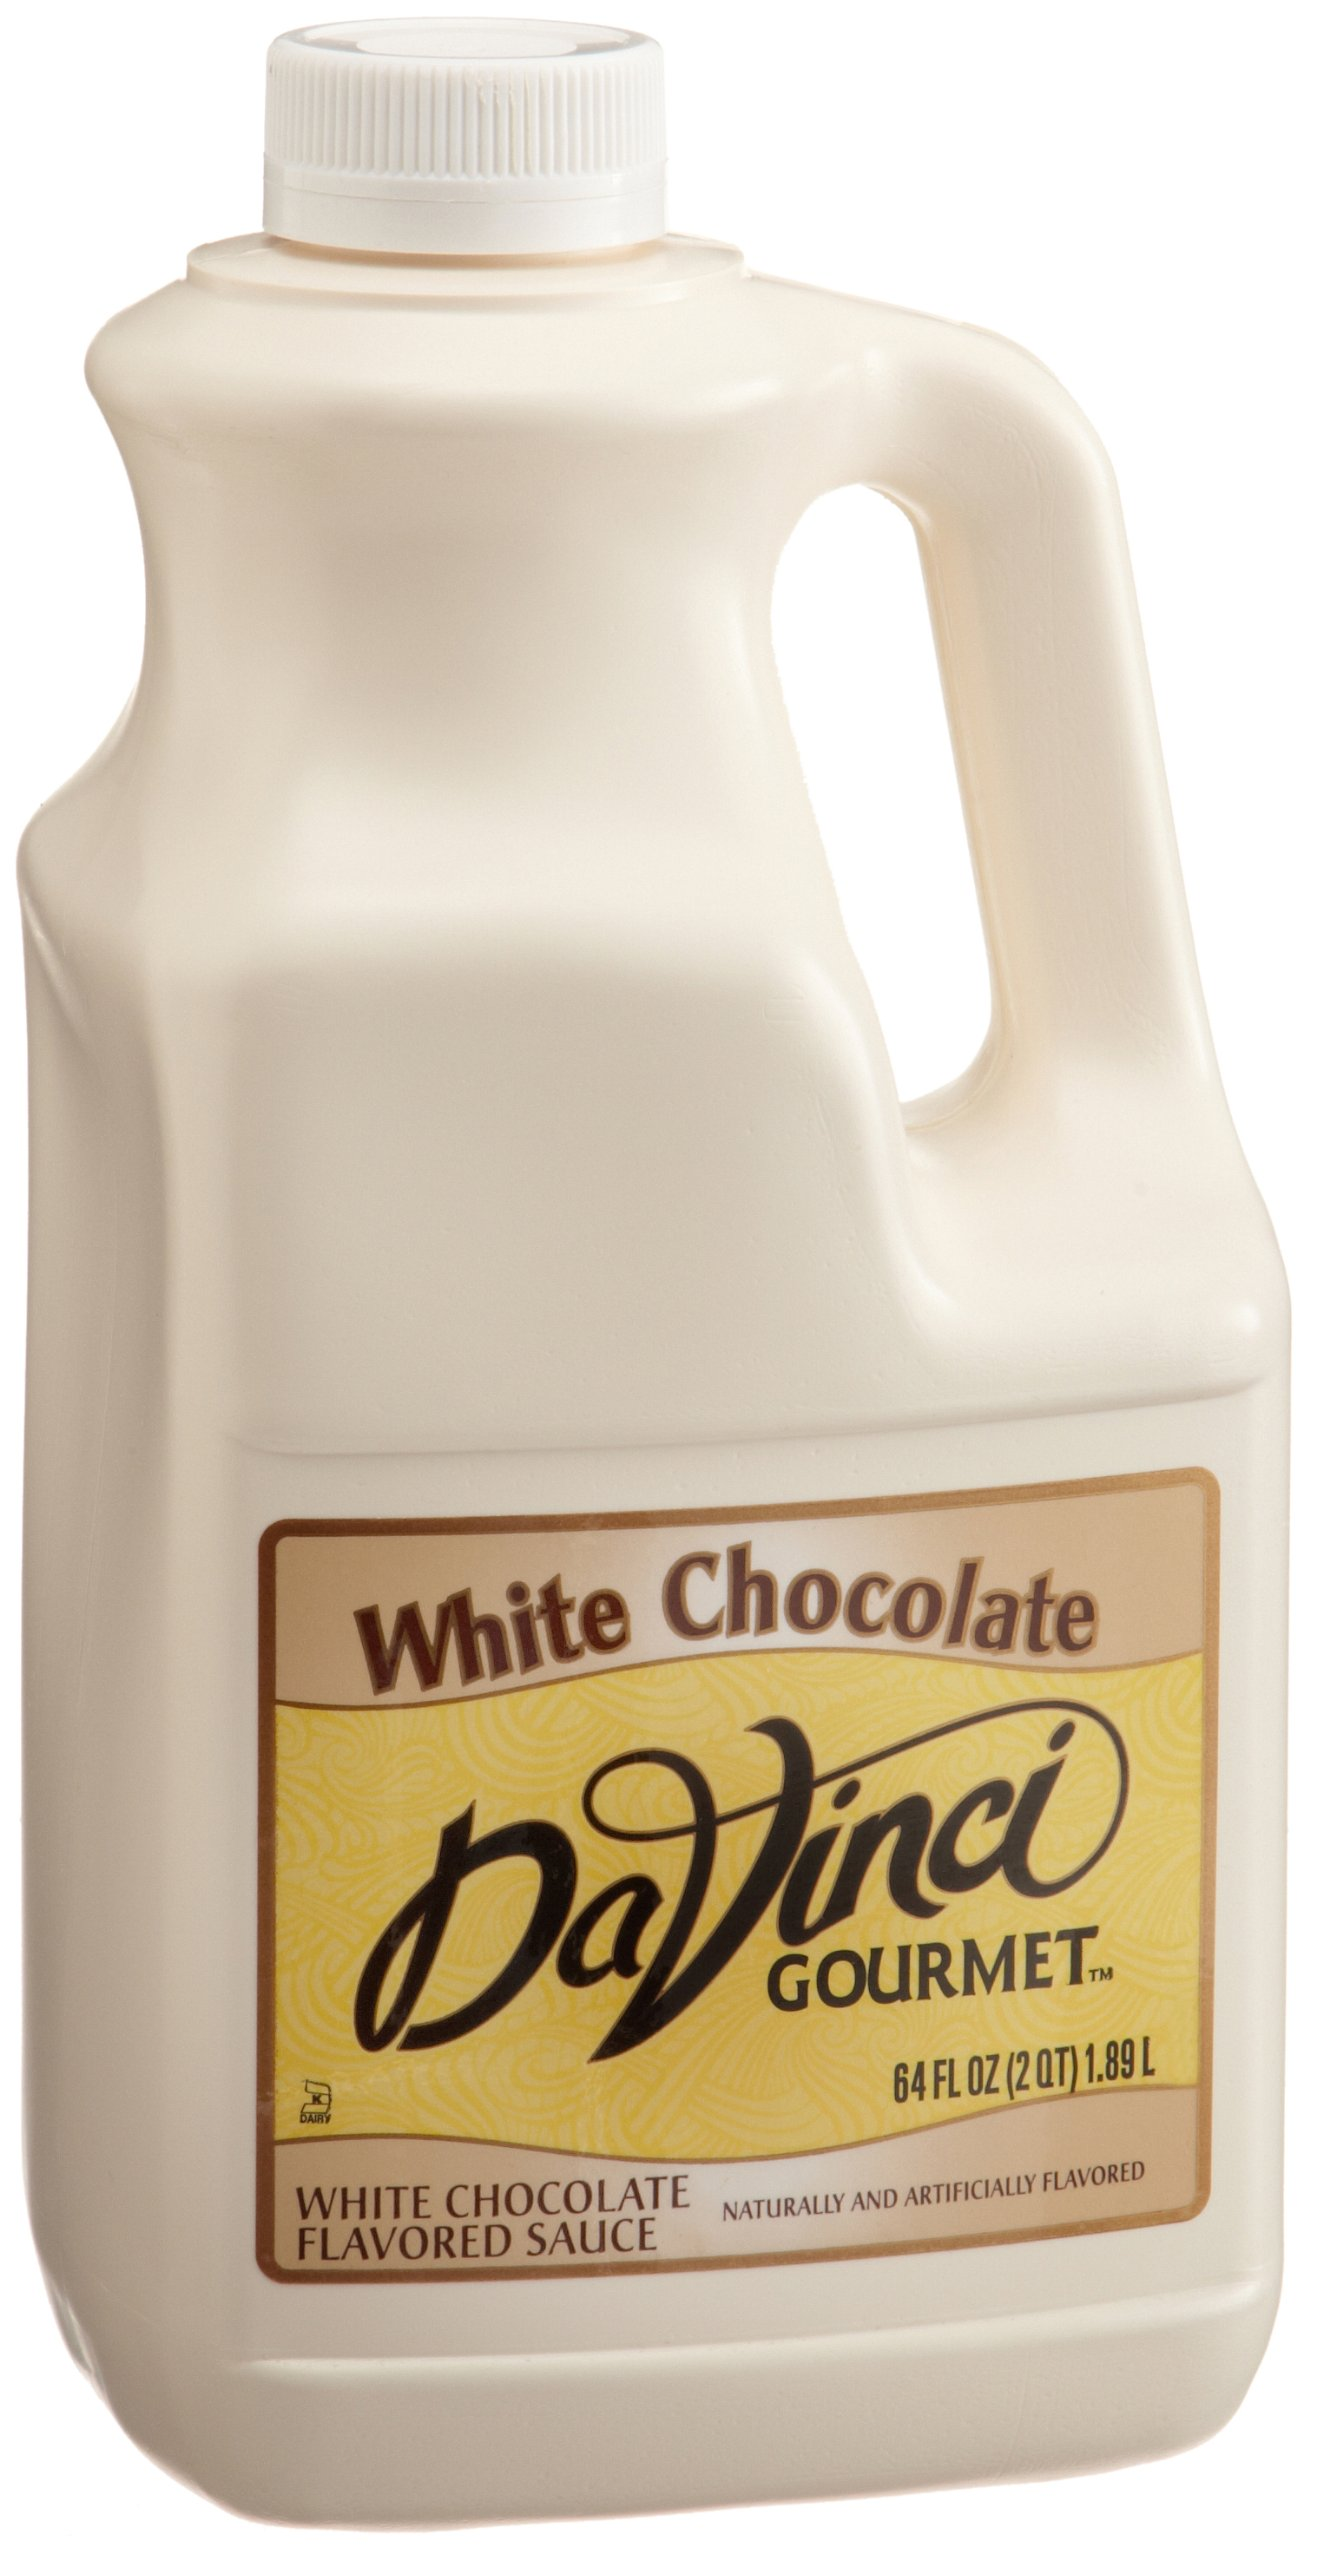 DaVinci Gourmet Sauce, White Chocolate, 64-Ounce Jugs (Pack of 6)